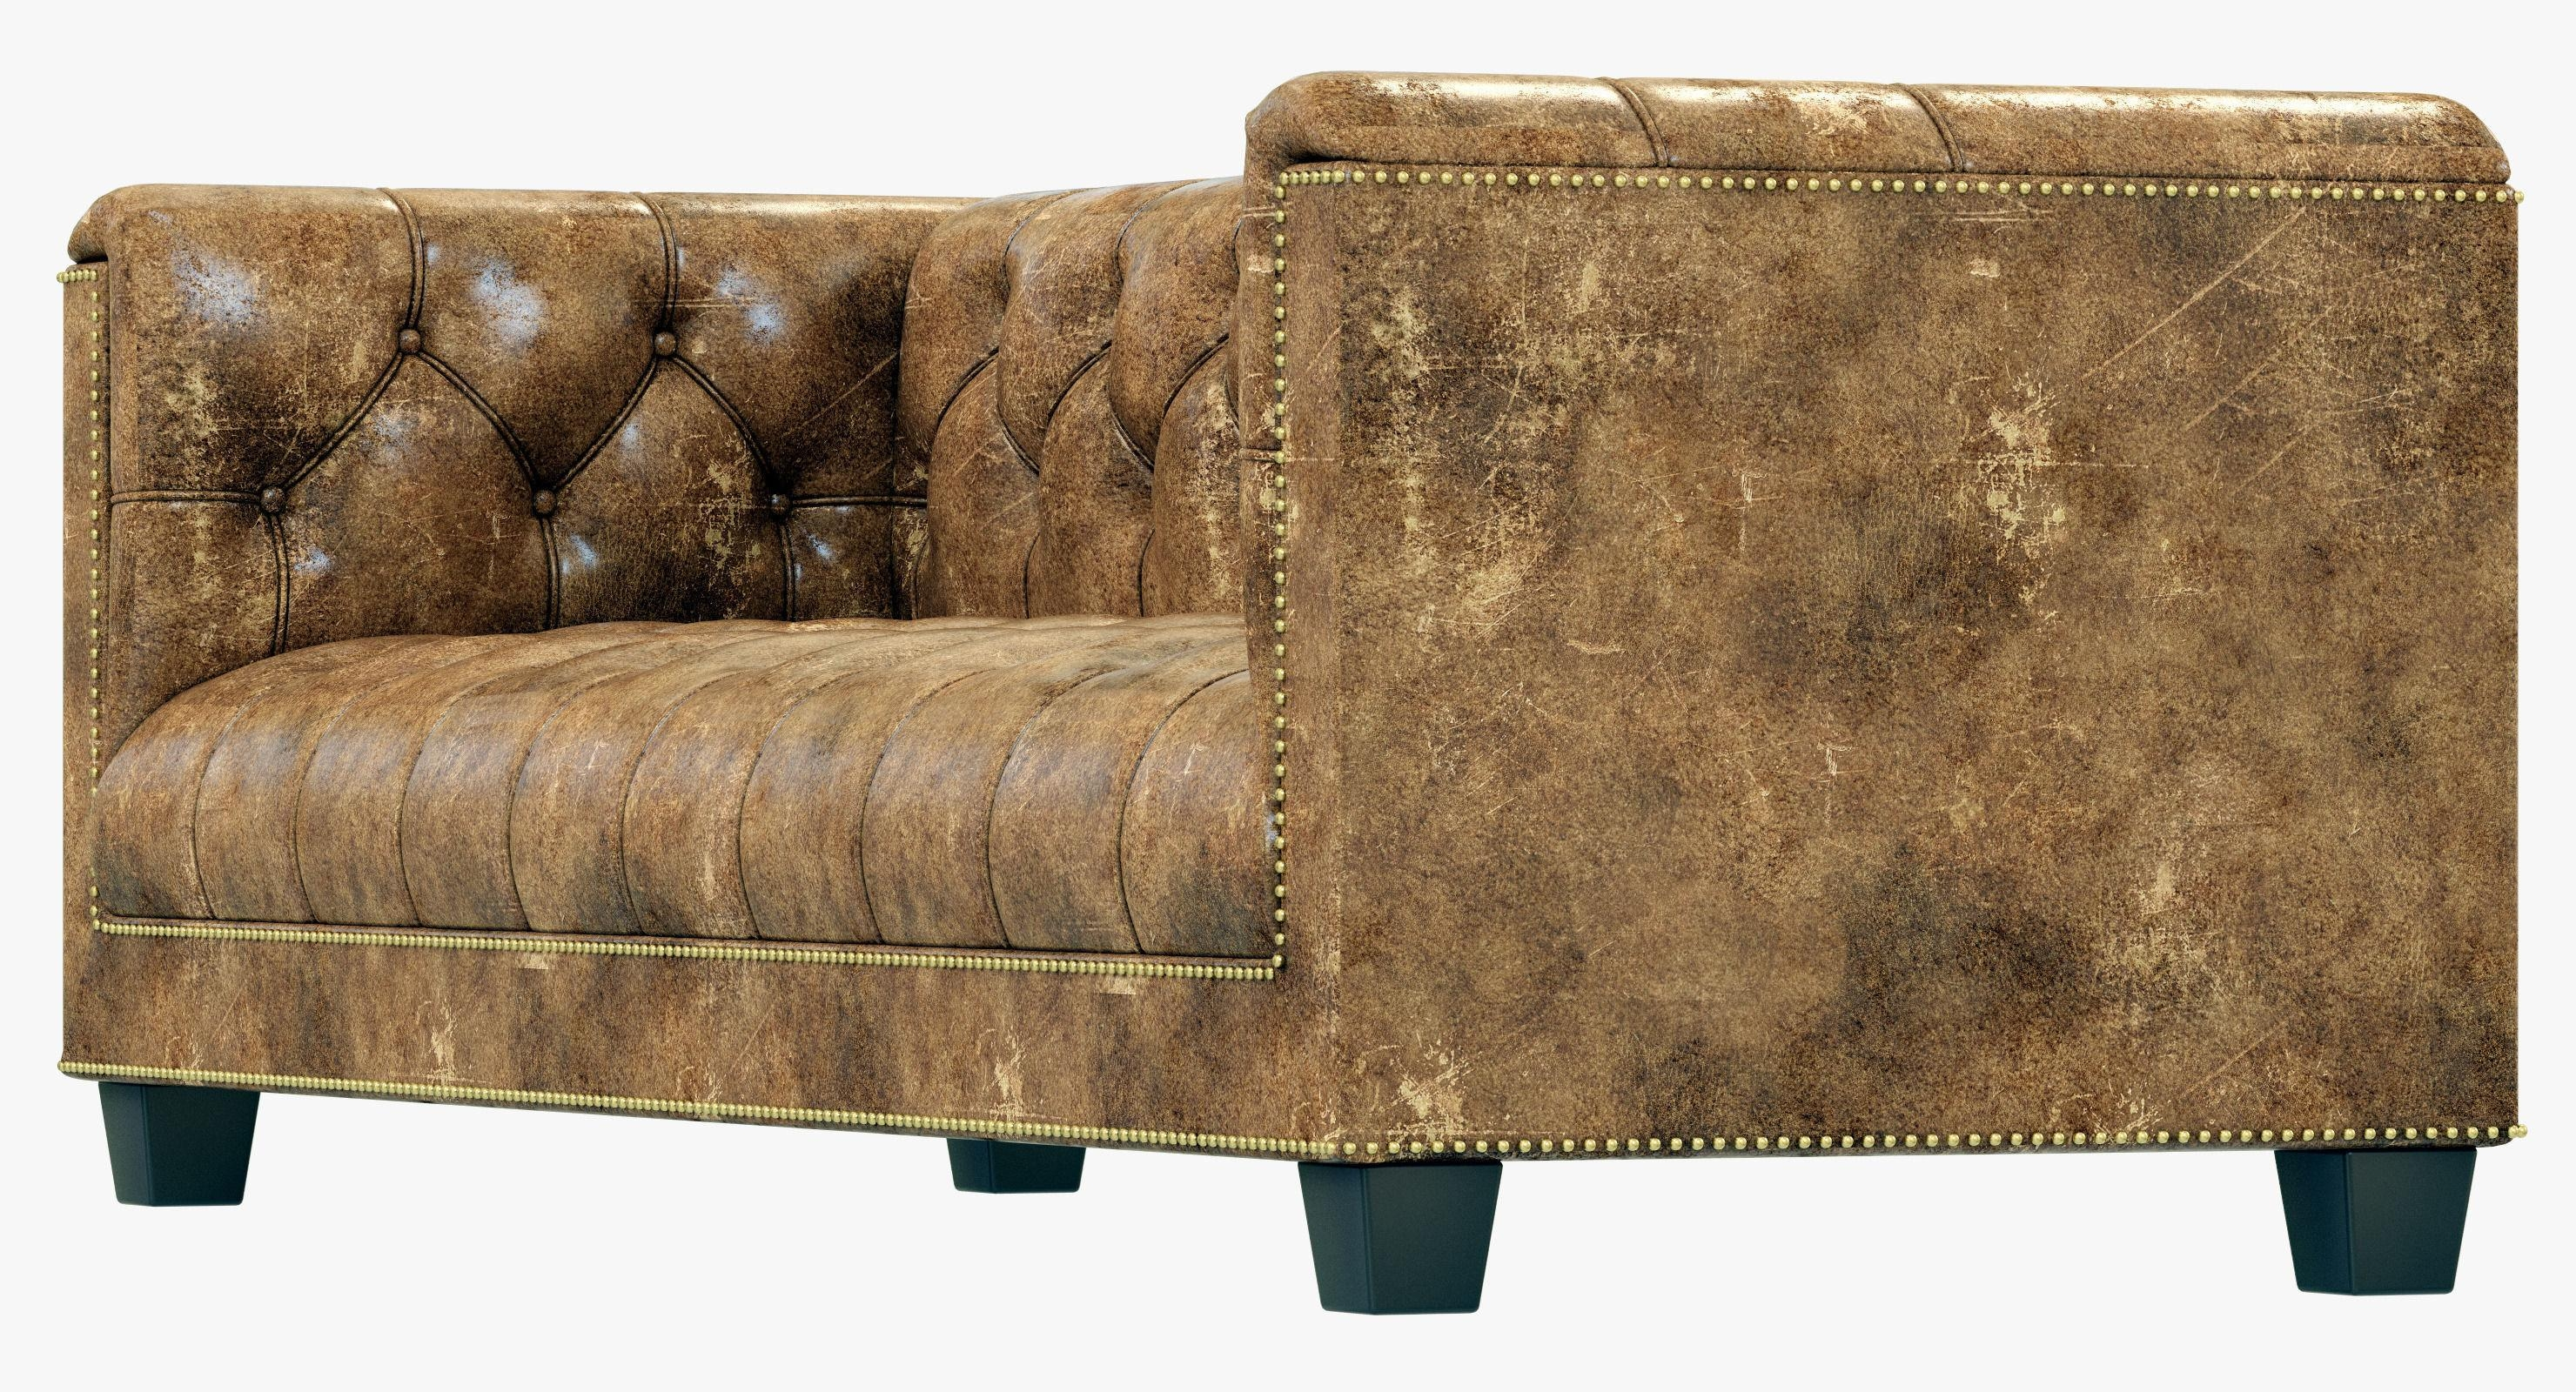 who makes restoration hardware leather sofas for bedrooms 20 43 choices of savoy sofa ideas